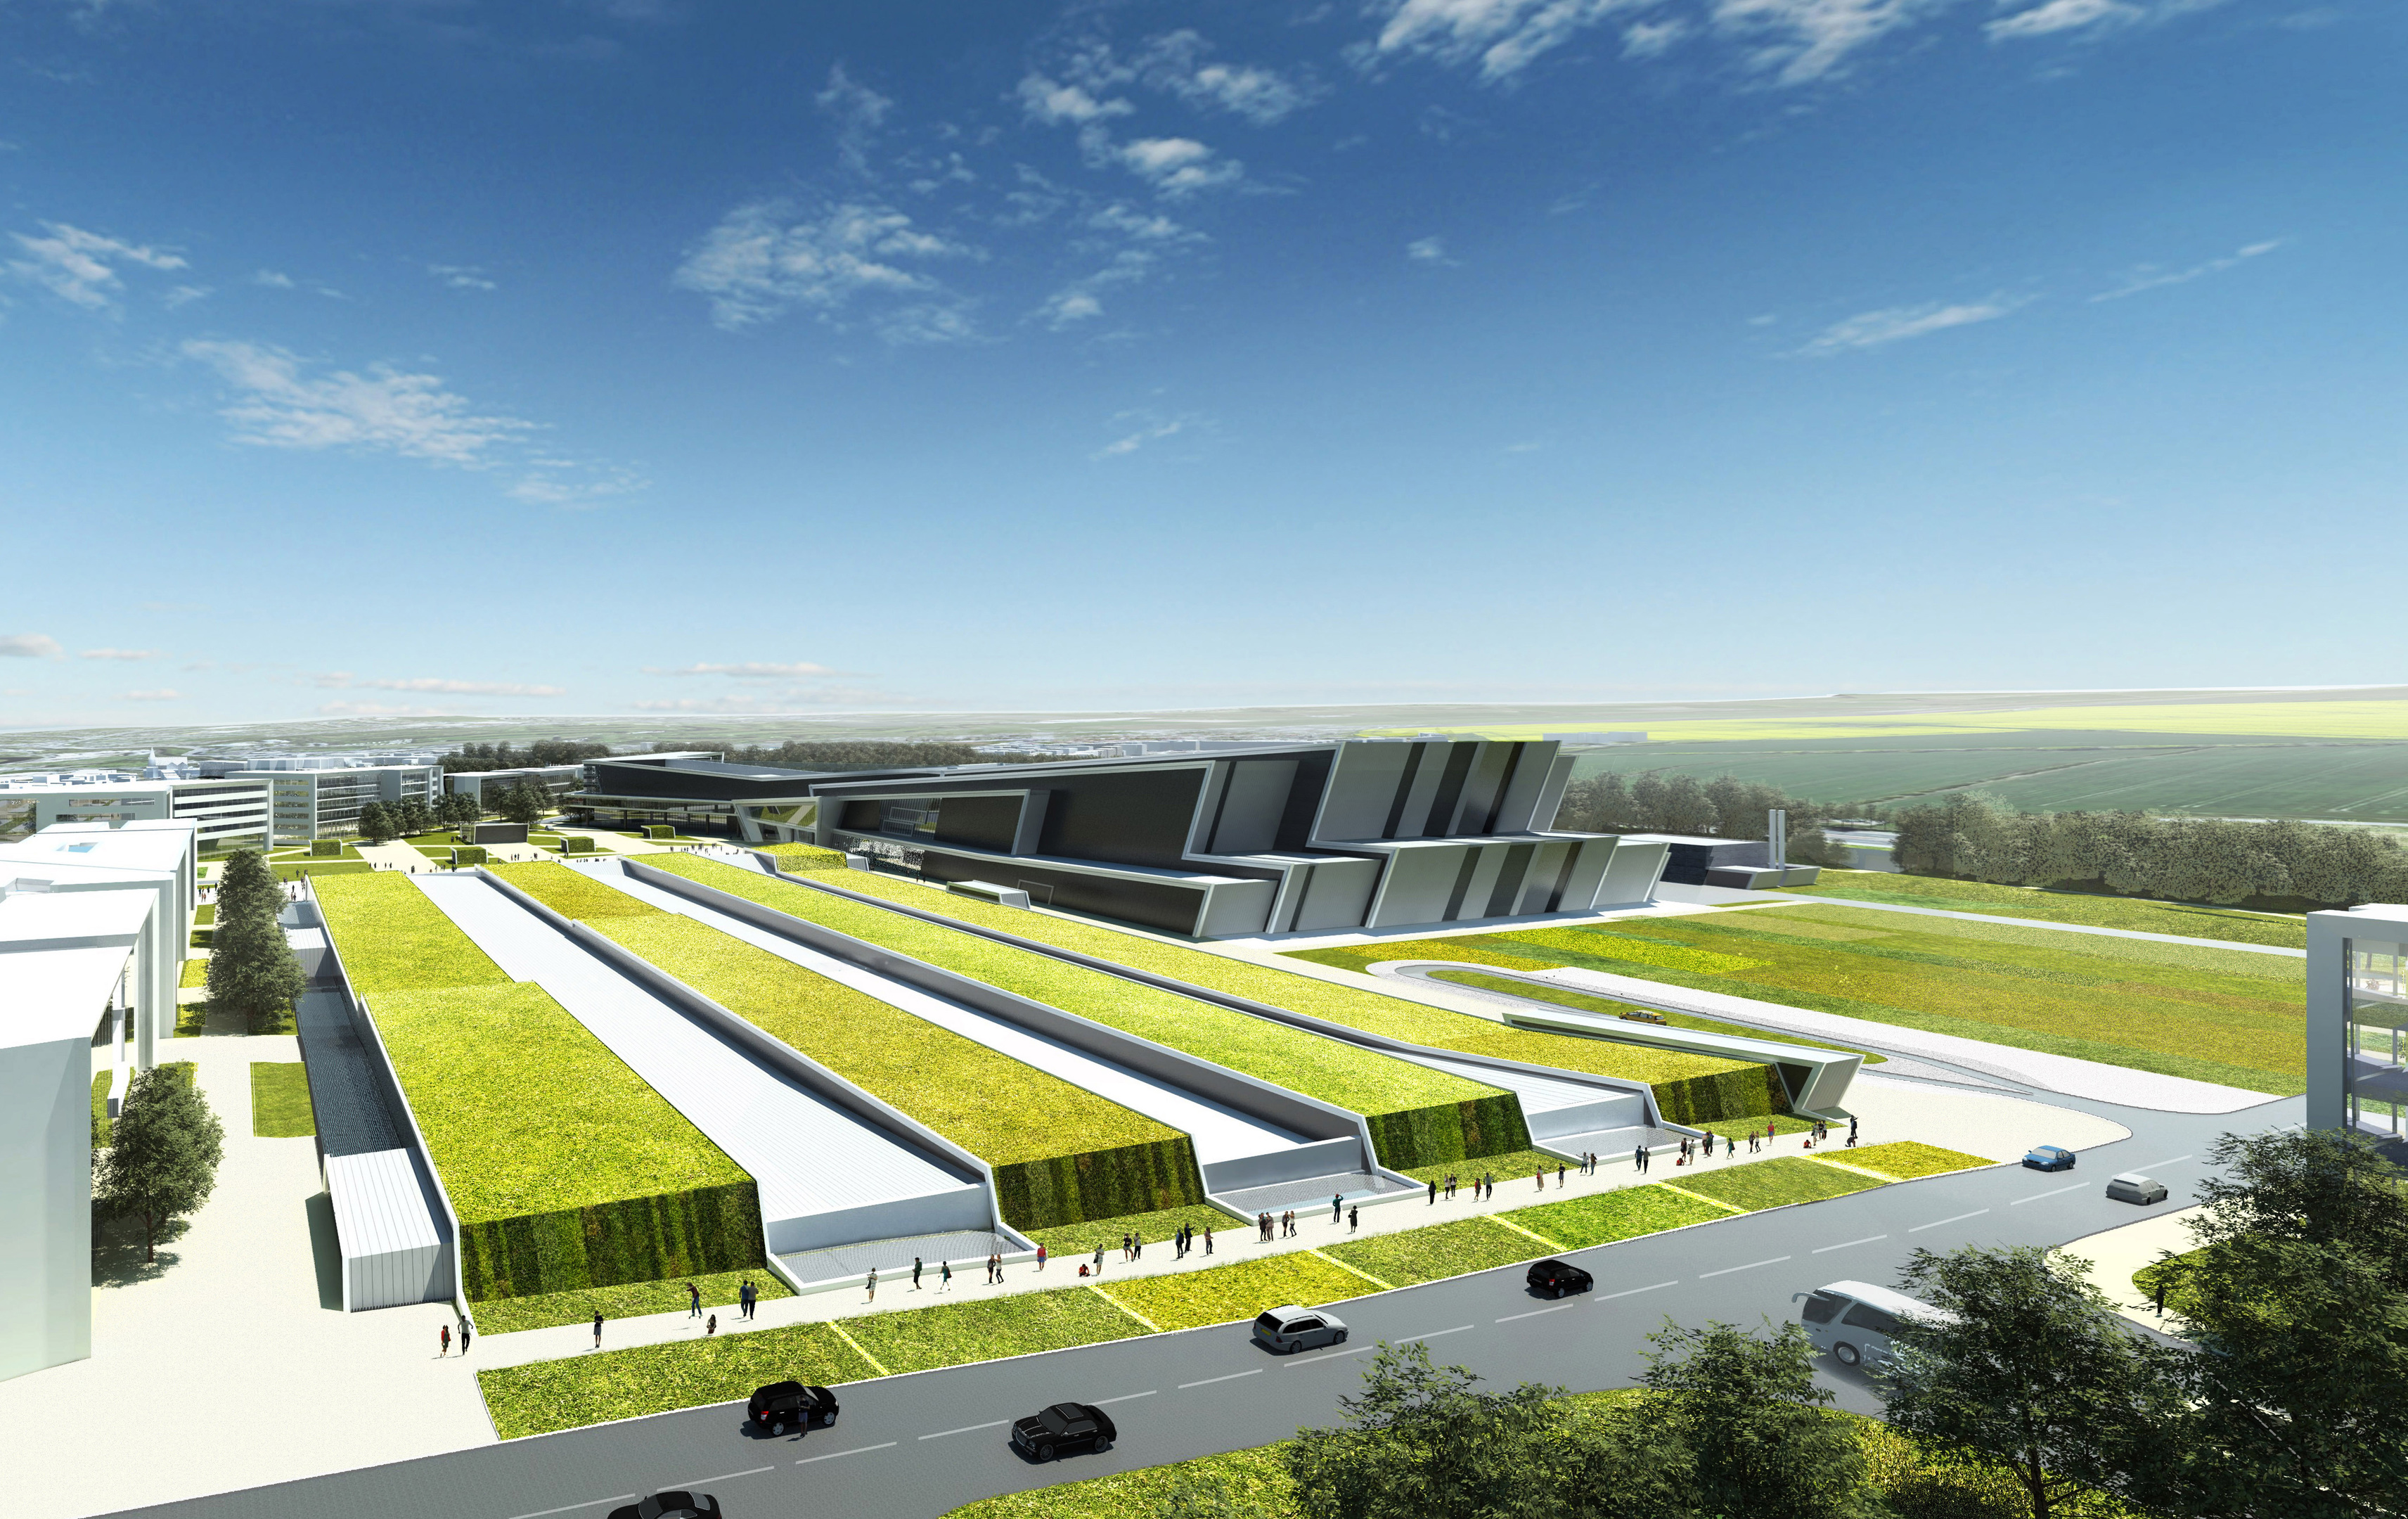 New draft proposal drawings of how the AECC could look.